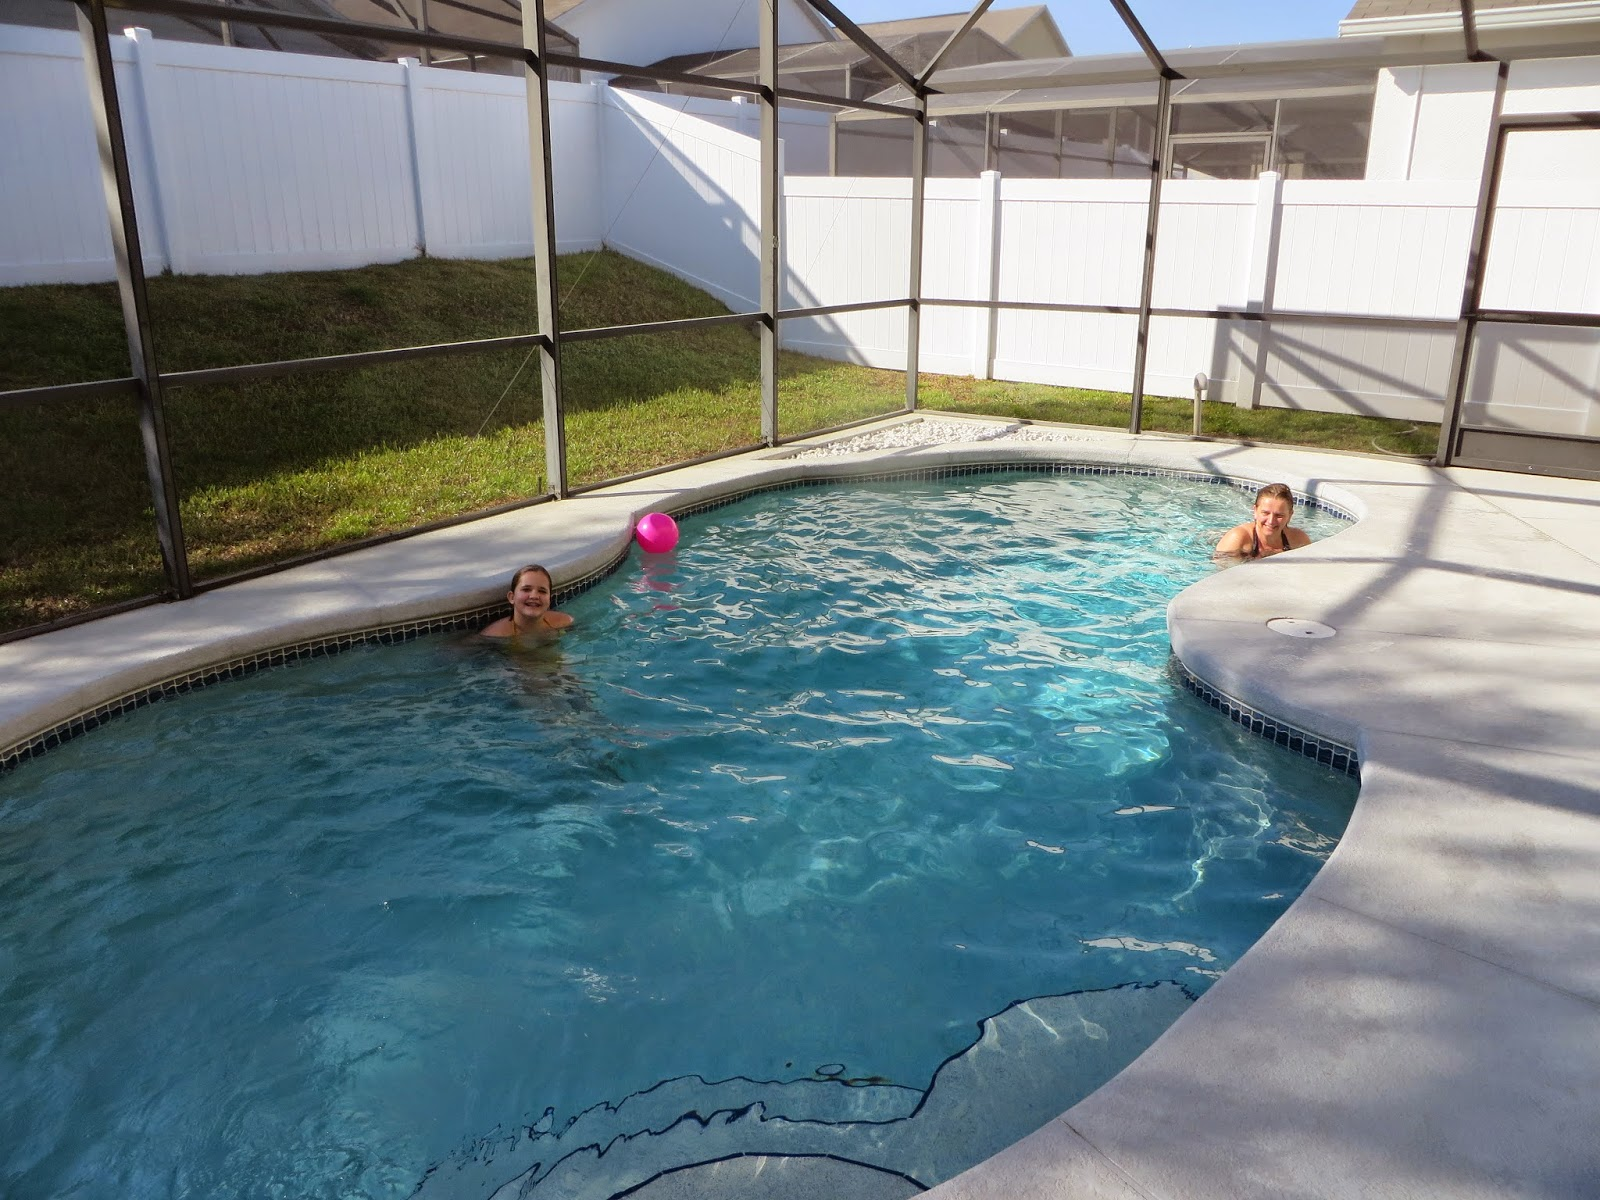 sunshine state 2015 dag 2 relax and enjoy